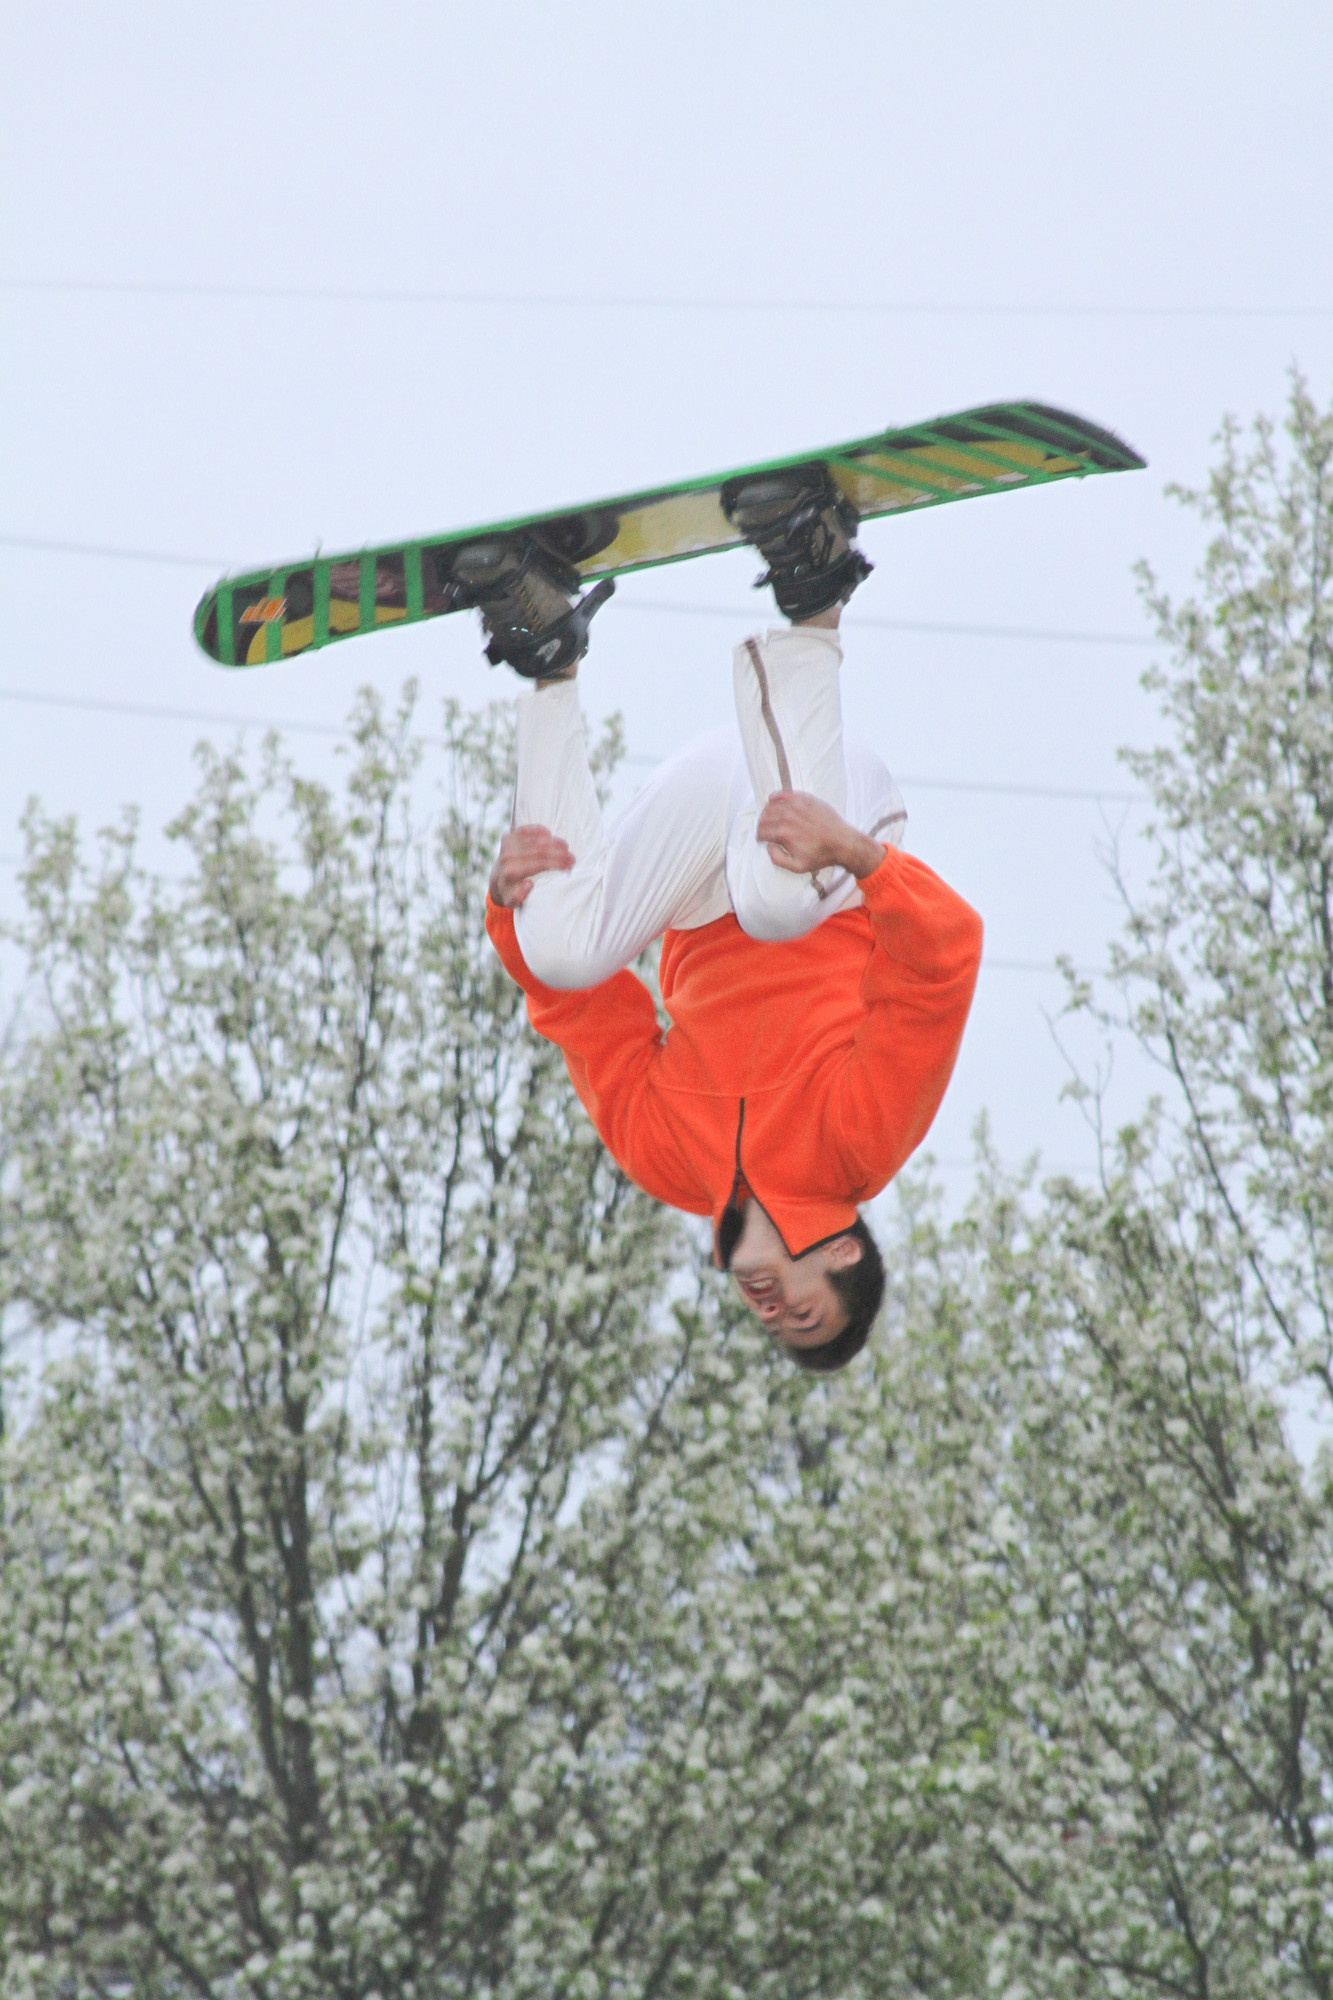 One of the Amazing Skyriders wowed the crowd with an aerial trick at Chabad's Lag B'Omer party in Cedarhurst Park.